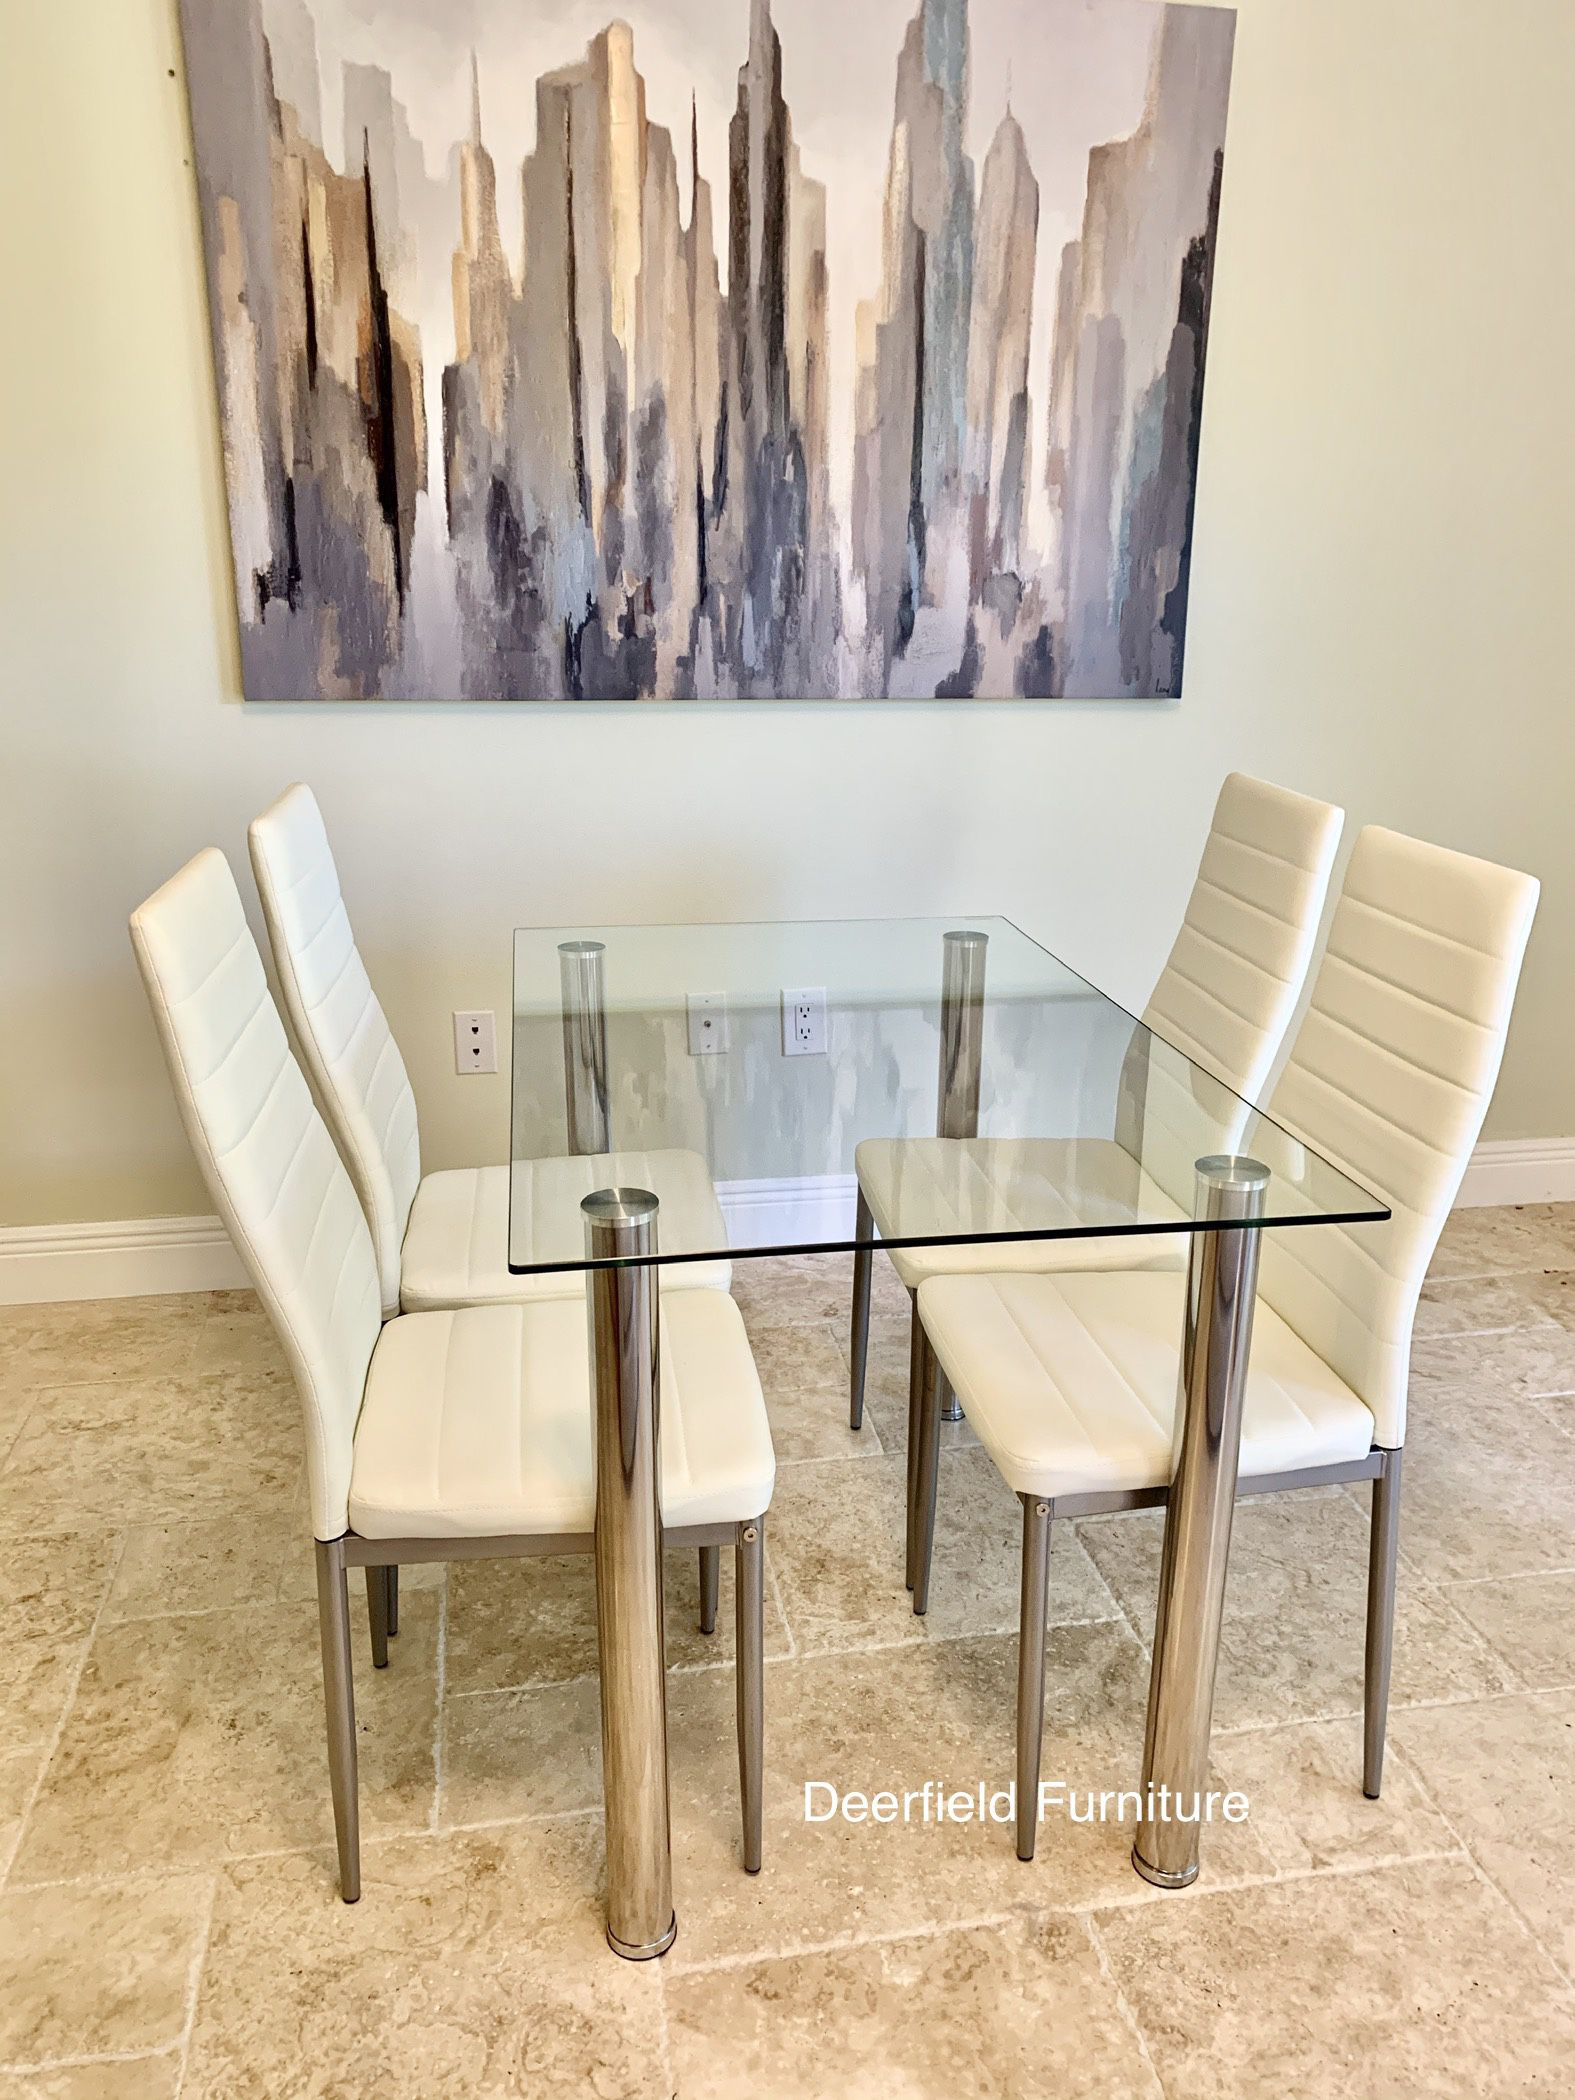 New White Dining Table Set with Tempered Glass Top Table & 4 Chairs - Dining Furniture Set